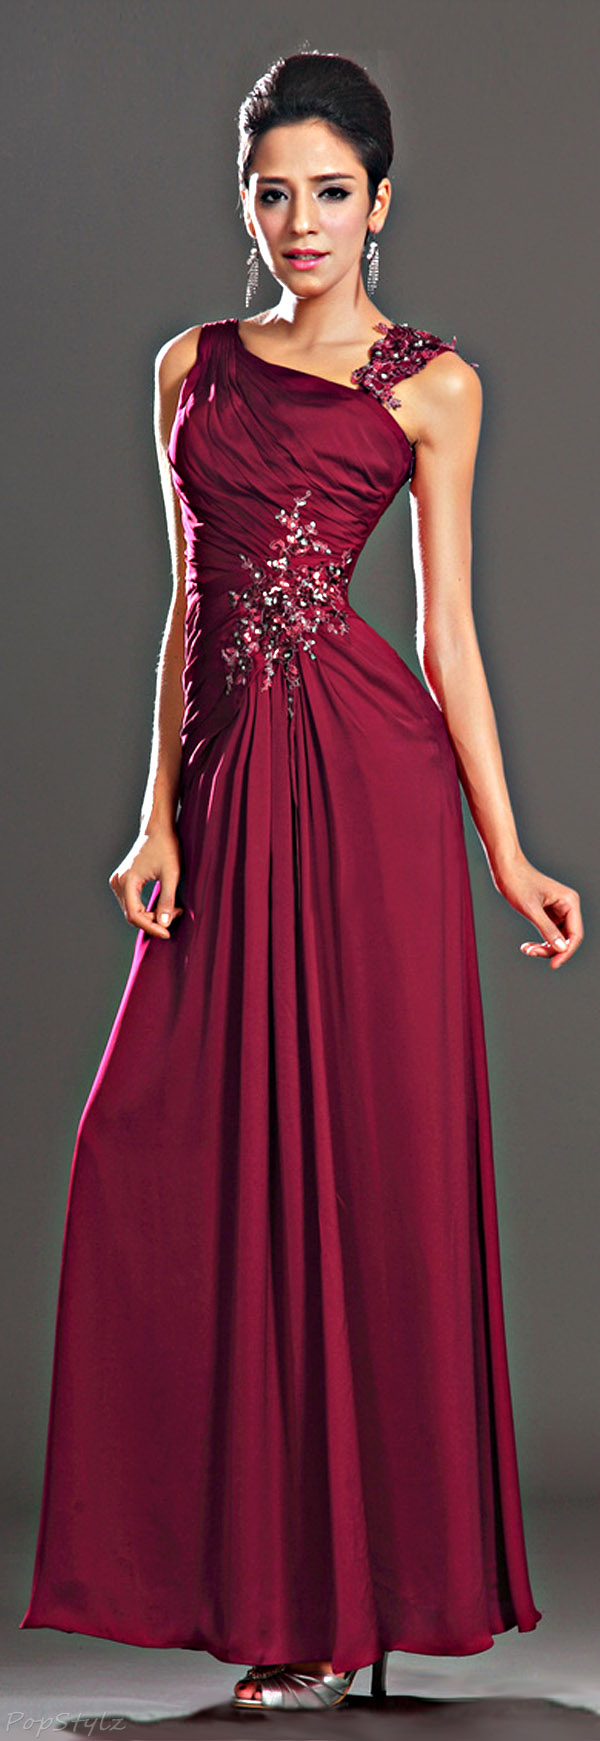 eDressit 00130717 Evening Gown